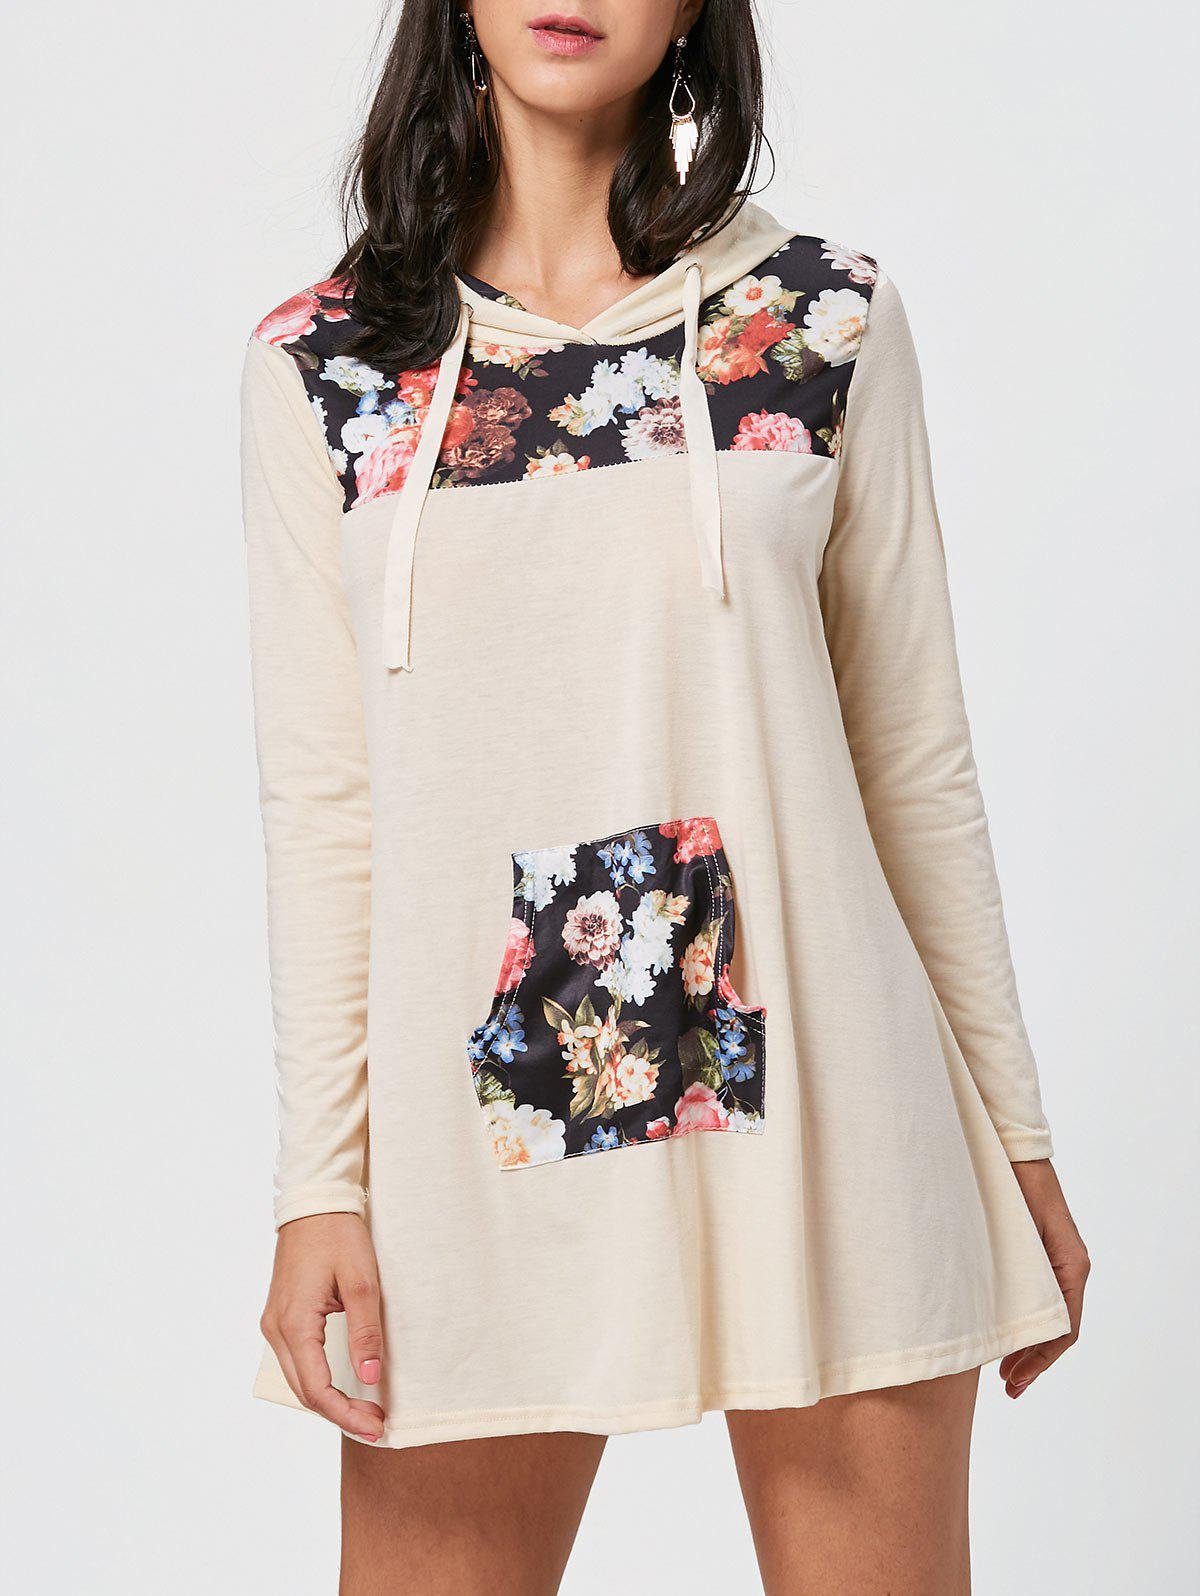 Floral Print Kangaroo Pocket Hooded Mini Dress - COLORMIX XL